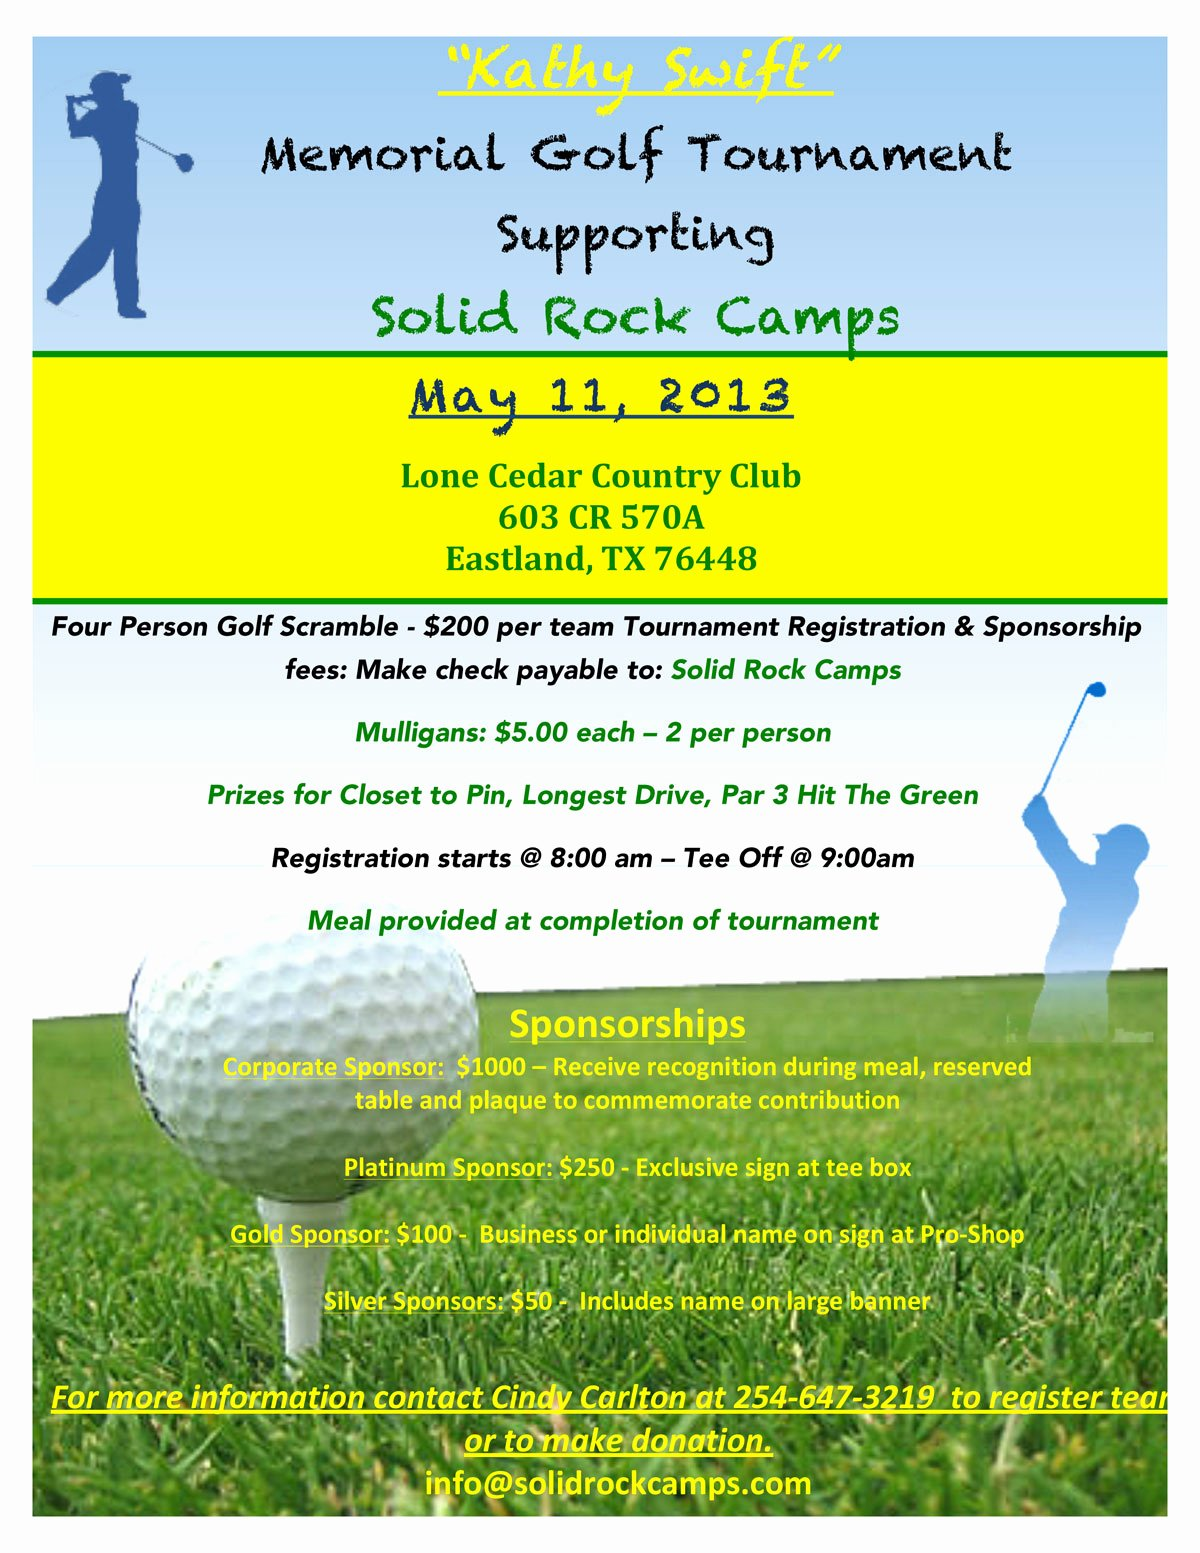 Free Golf tournament Flyer Template Unique Kathy Swift Memorial Golf tournament May 11 Microplexnews